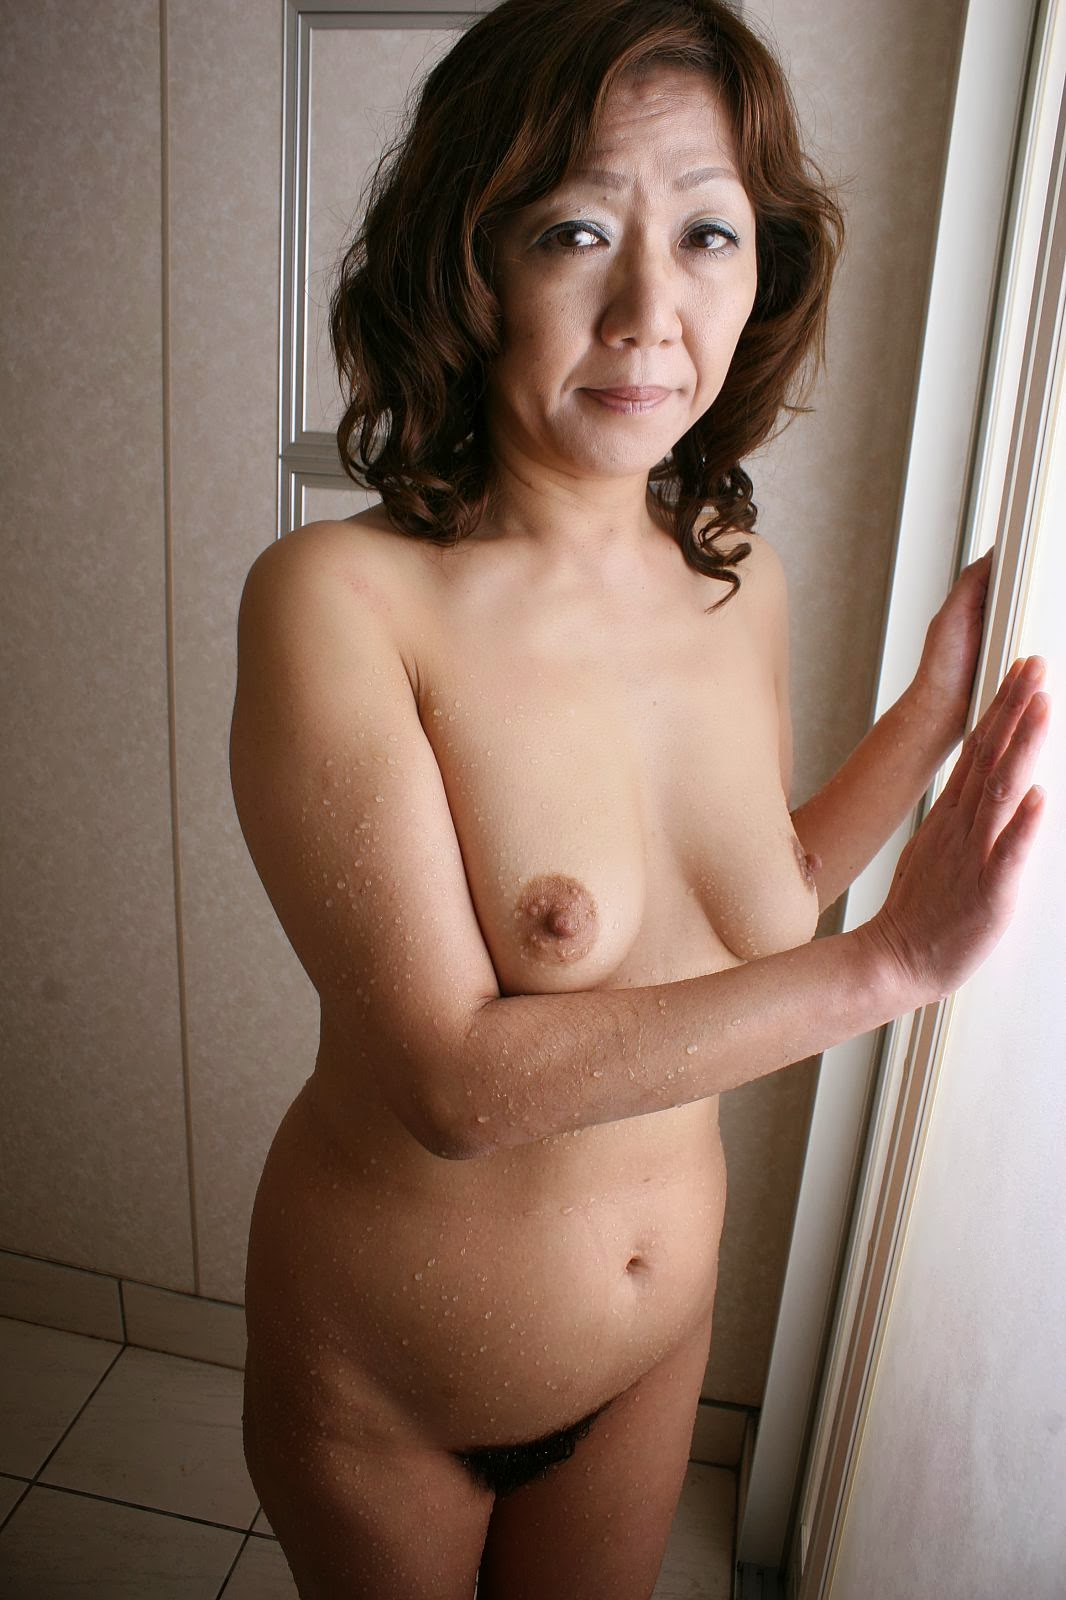 Nude mature women portraits